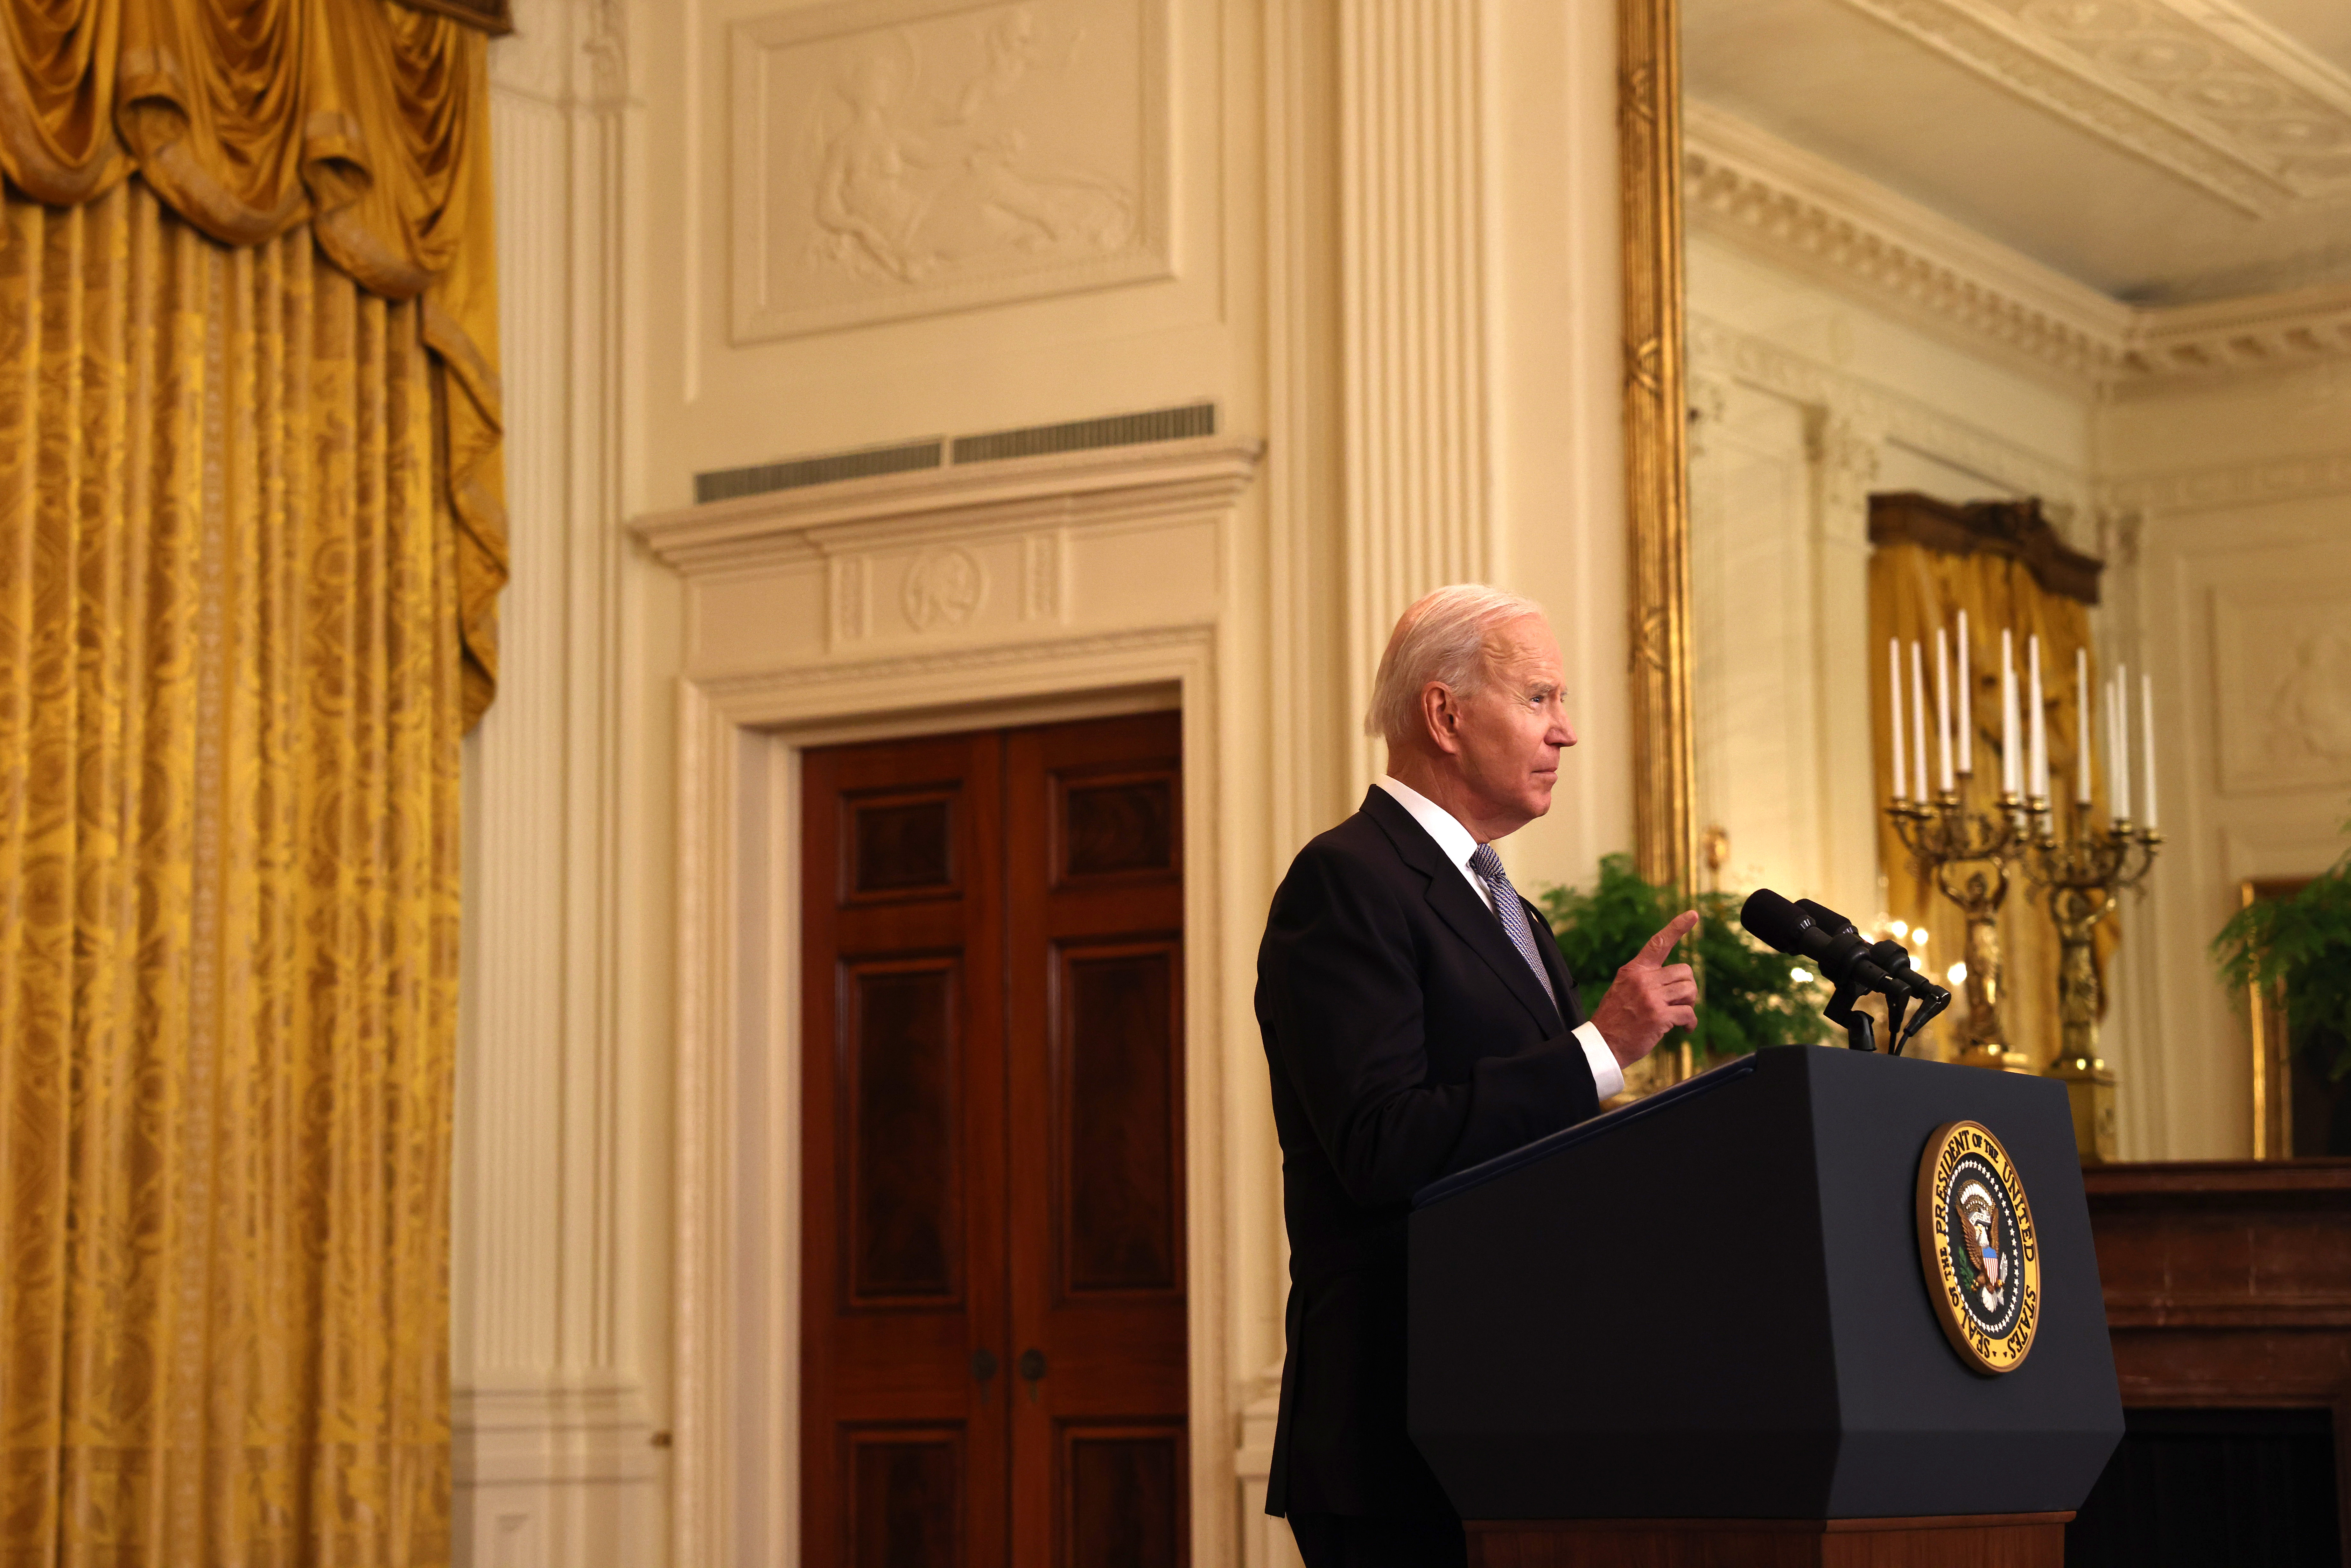 President Joe Biden speaks at a podium marked with the Presidential seal in a room with golden drapes and a large candelabra behind him.